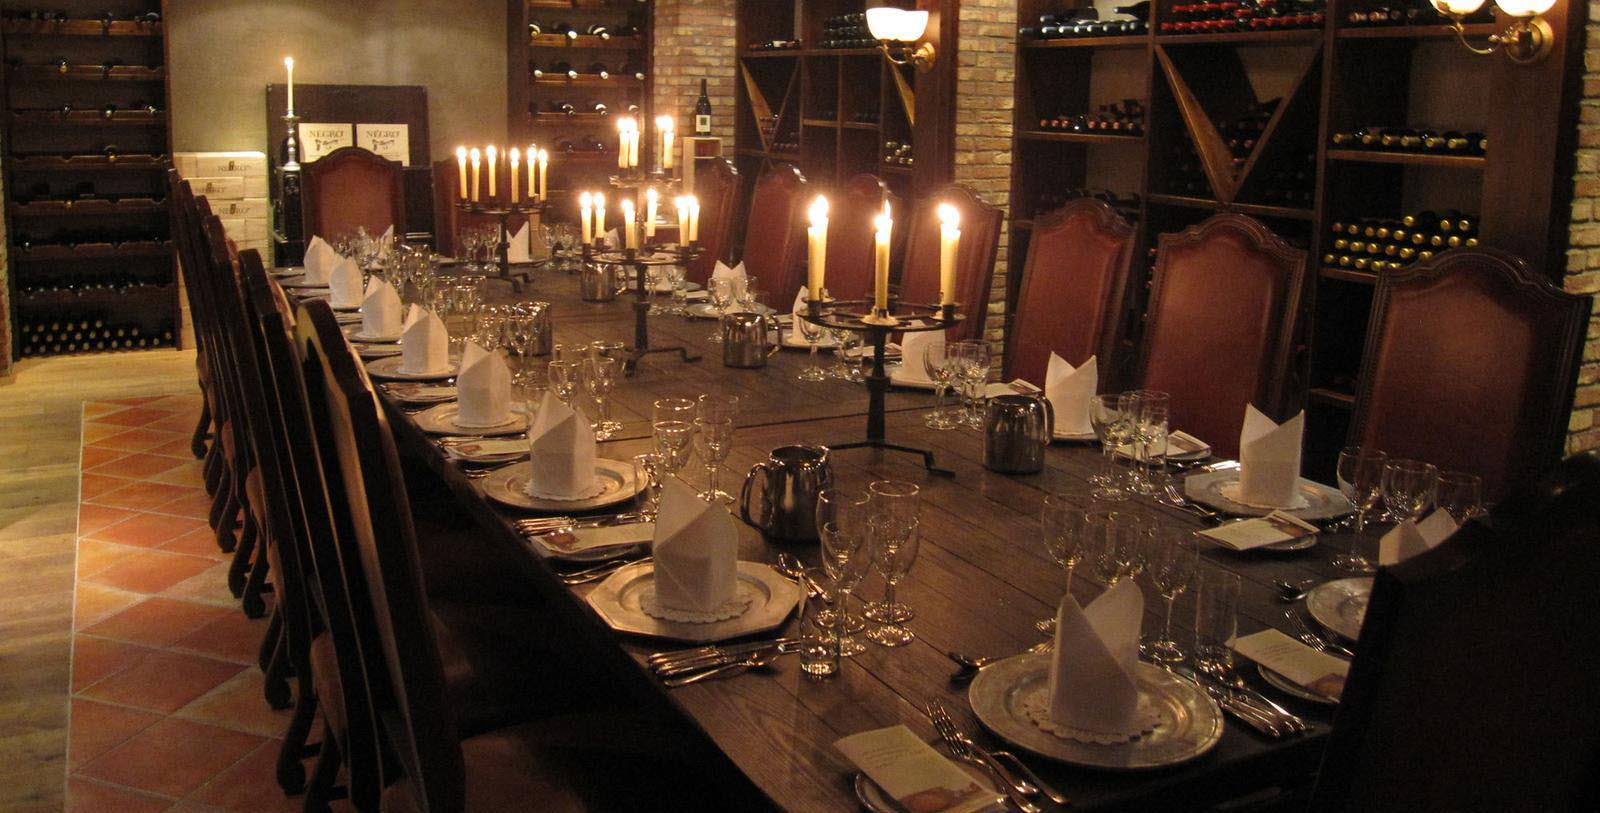 Image of Elegant Meal in Wine Cellar Losby Gods, 1744, Member of Historic Hotels Worldwide, in Finstadjordet, Norway, Taste